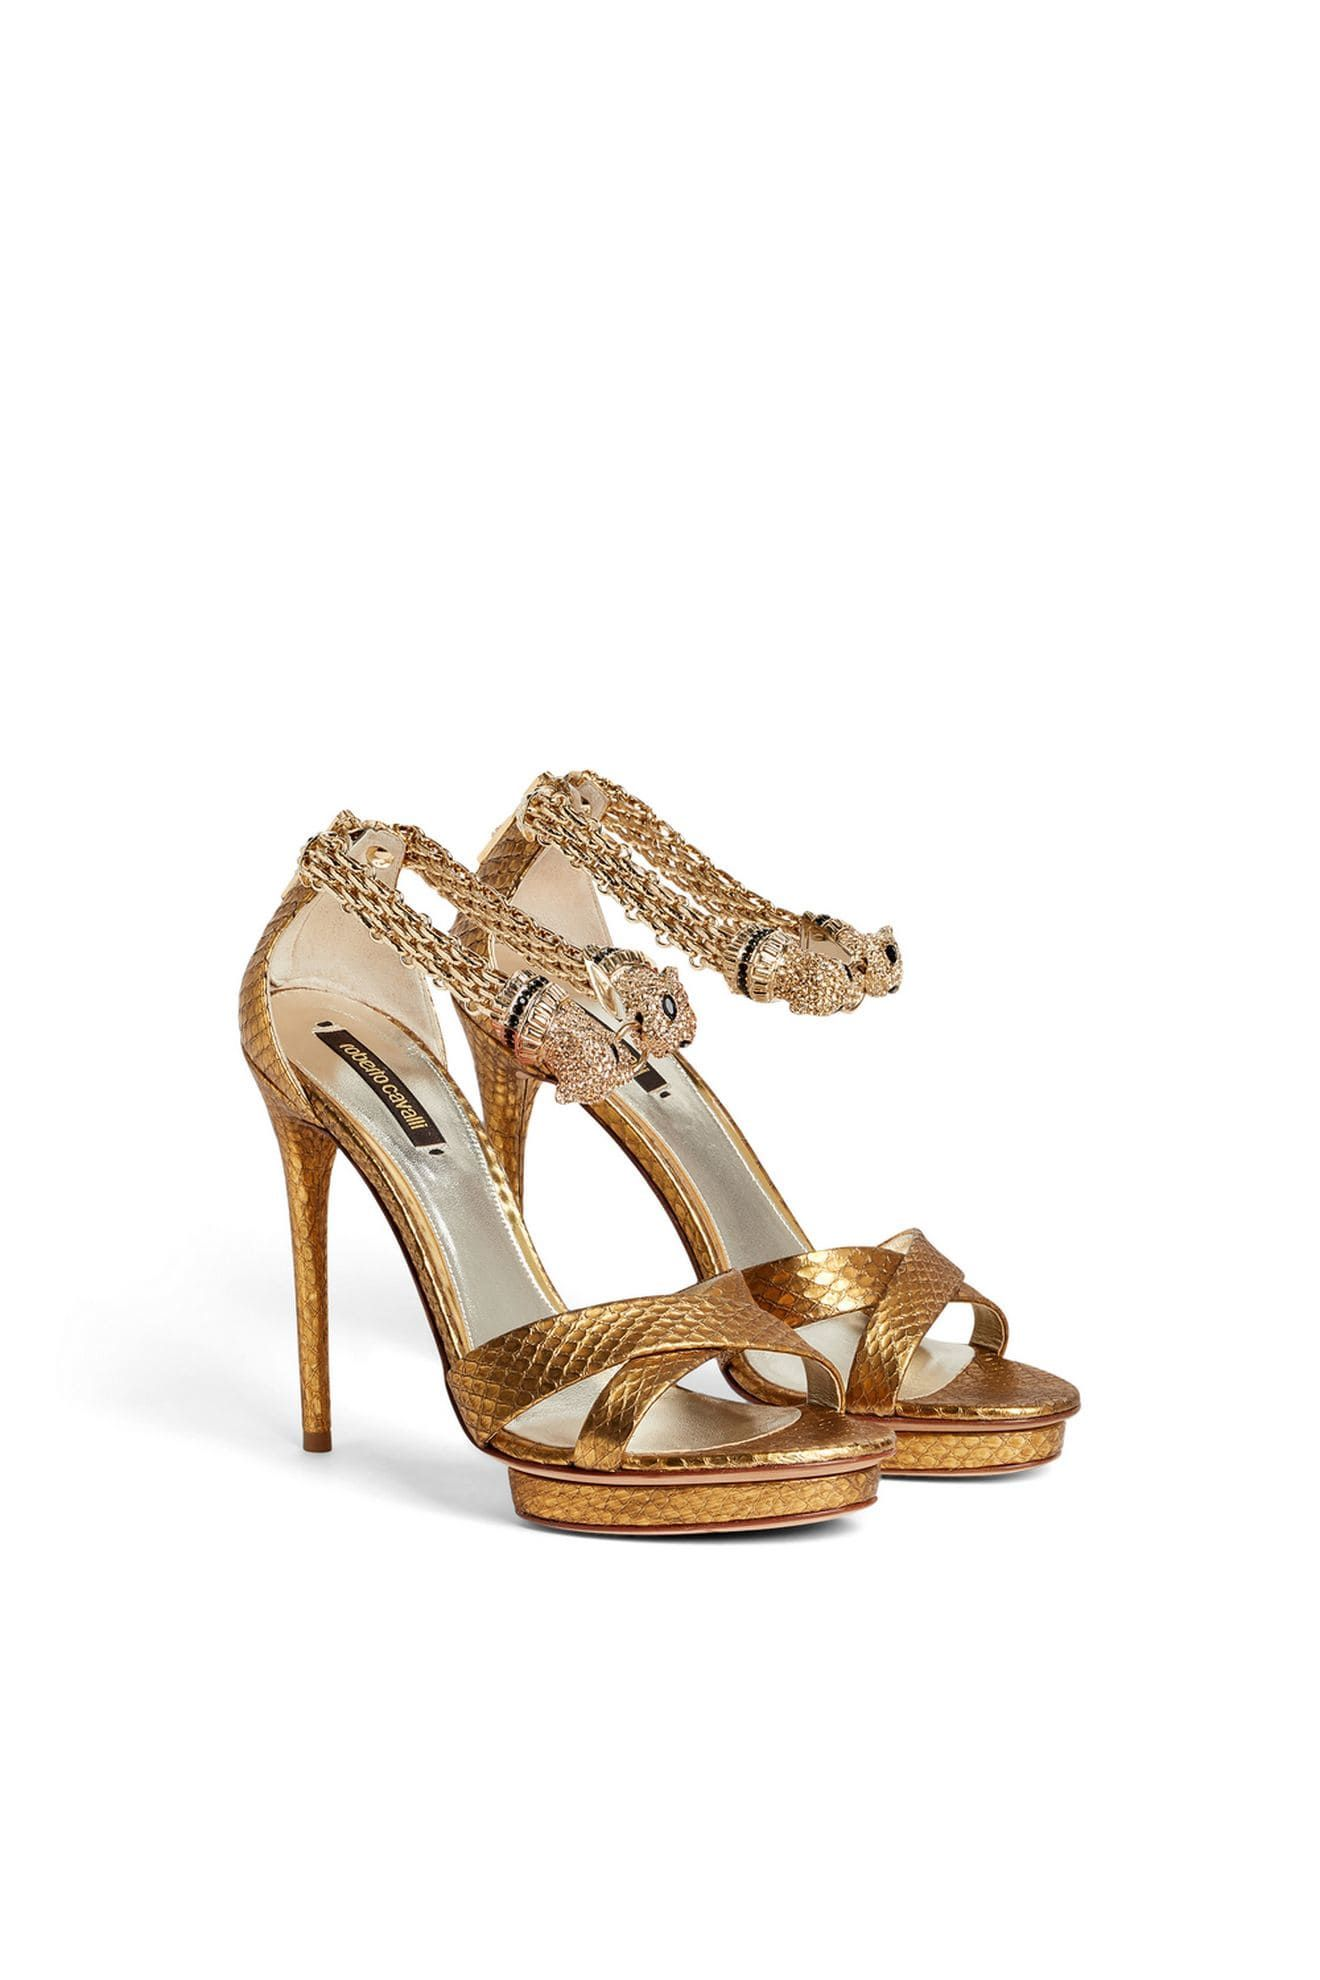 071f0140ce Gold goatskin and snakeskin Jewel panther 120 sandals from Roberto Cavalli  featuring an open toe, crossover straps to the front, a branded insole, ...